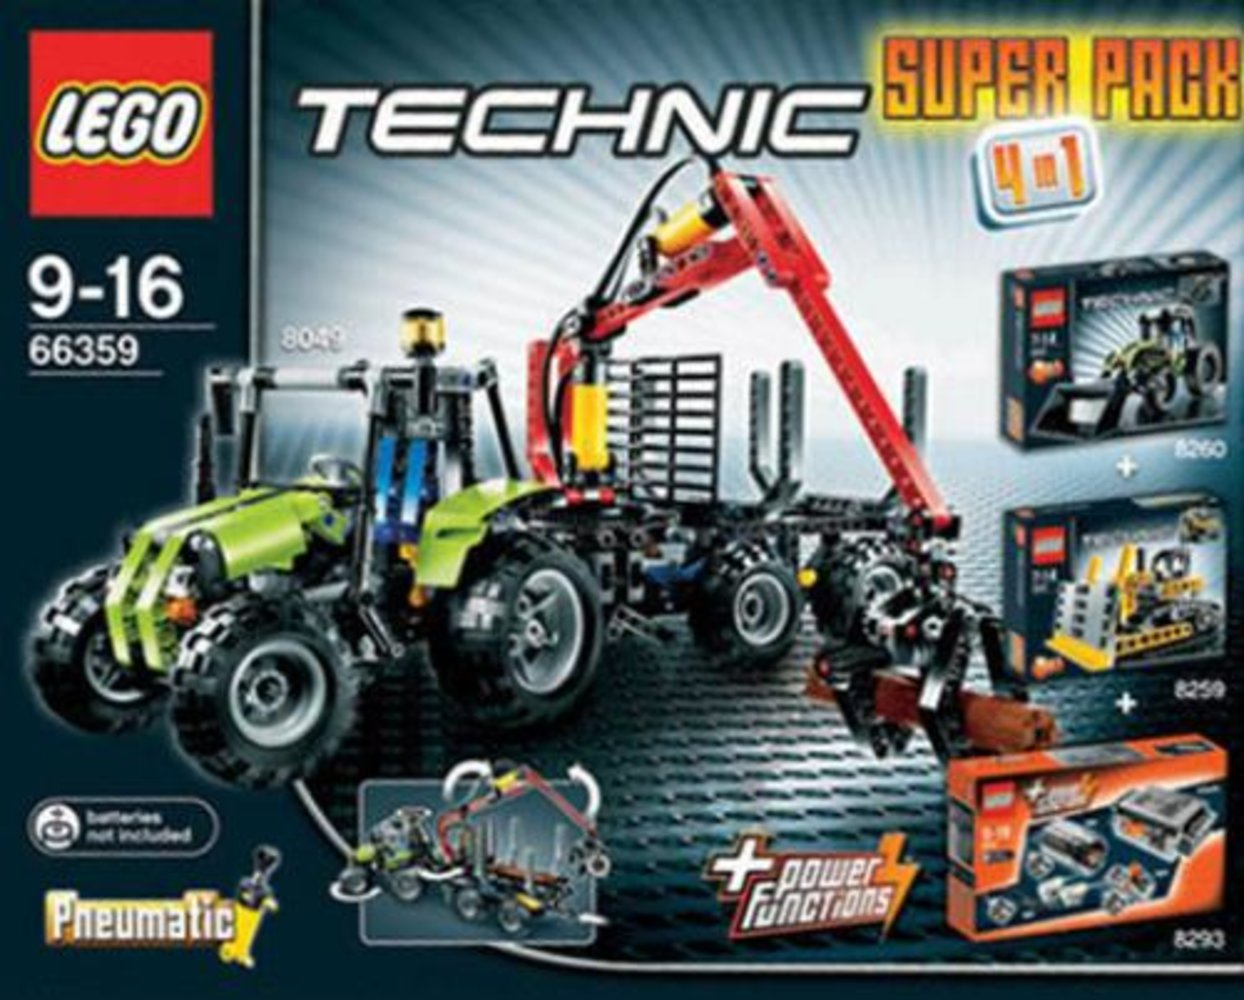 Technic Super Pack 4 in 1 (8049 8259 8260 8293)